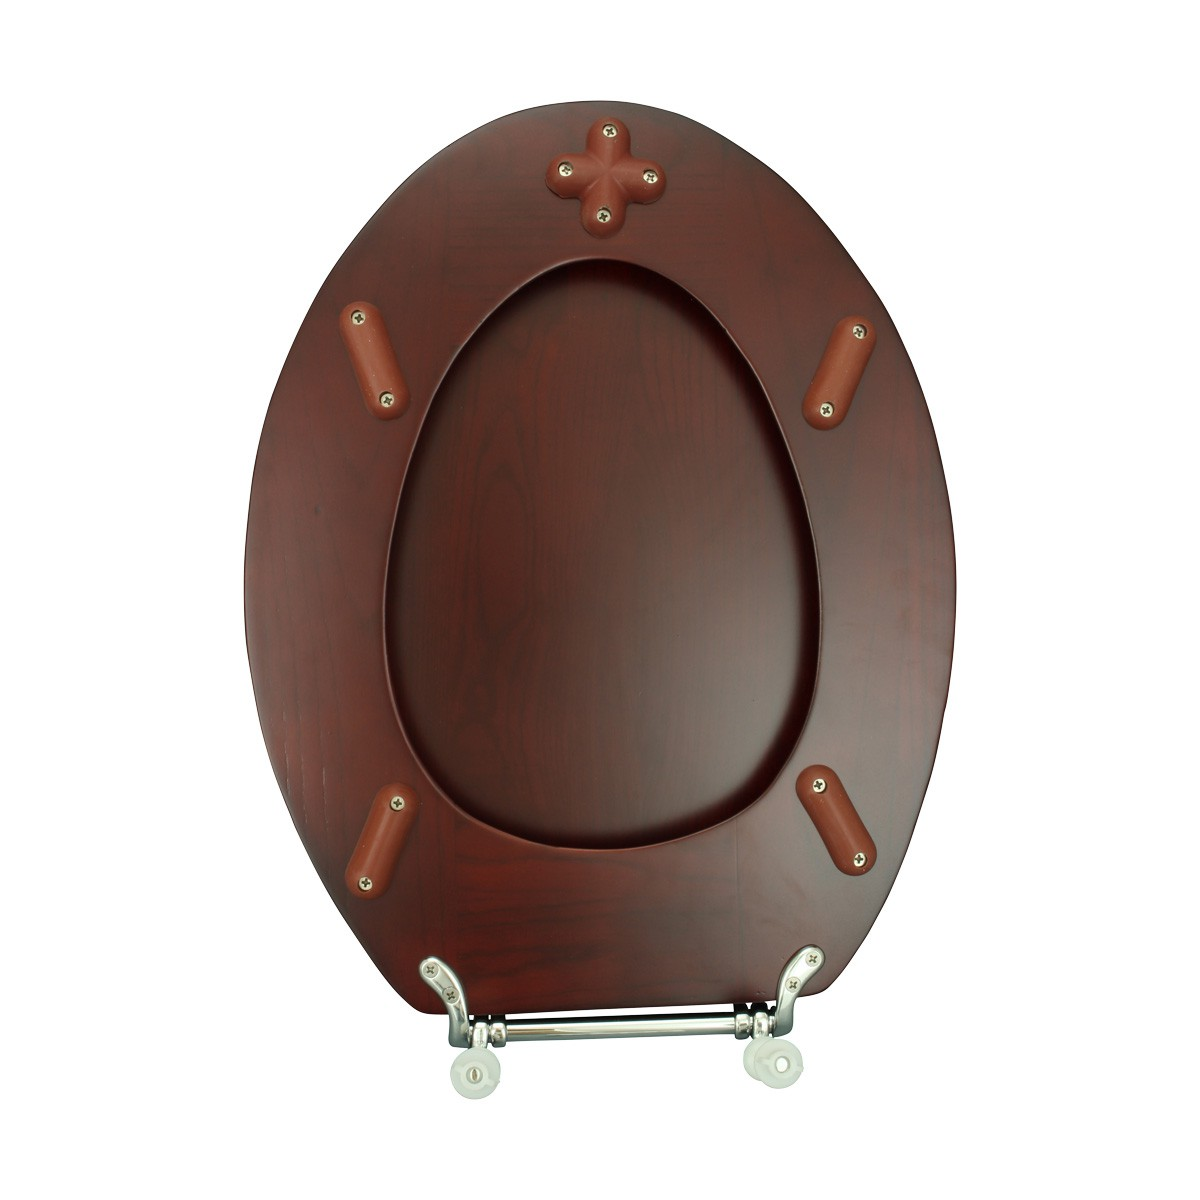 Toilet Seat Elongated Solid Wood Cherry Chrome Brass Hinge Set of 2 wooden toilet seats wood toilet seats wood toilet seat